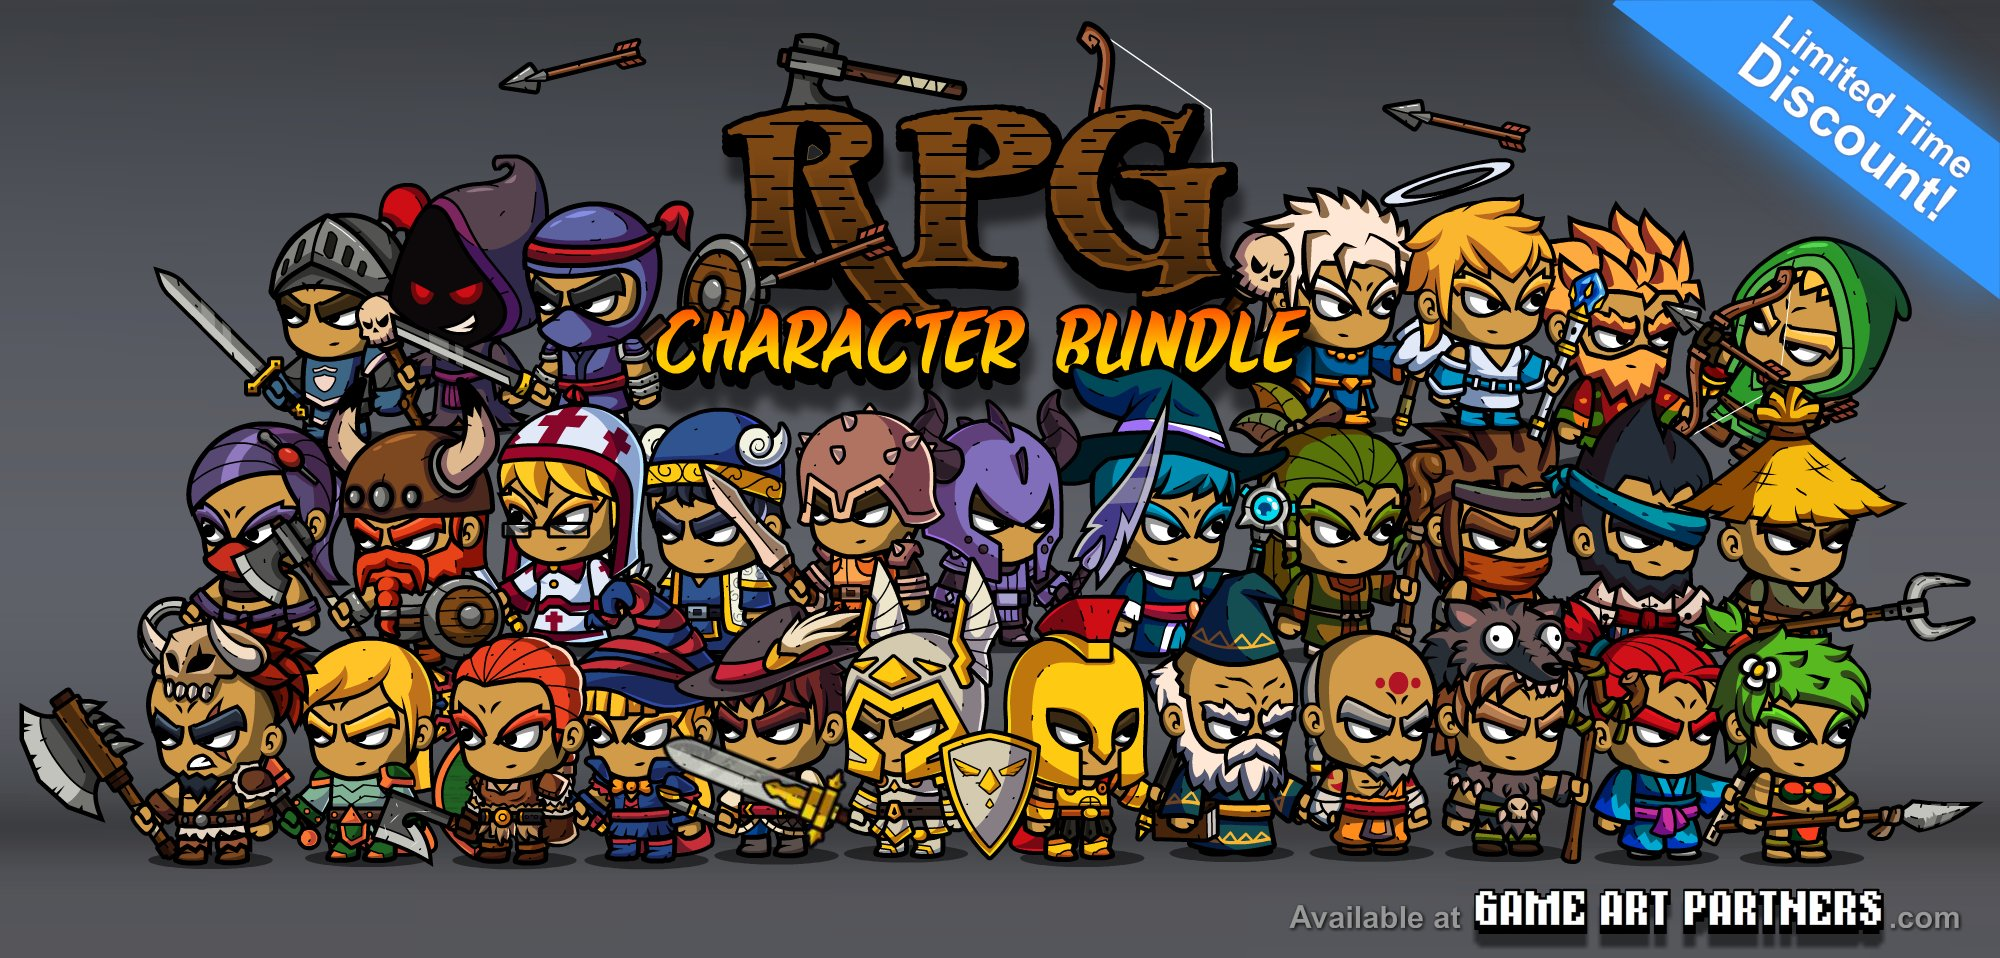 Click to view RPG Character Bundle of Royalty-Free Game Art